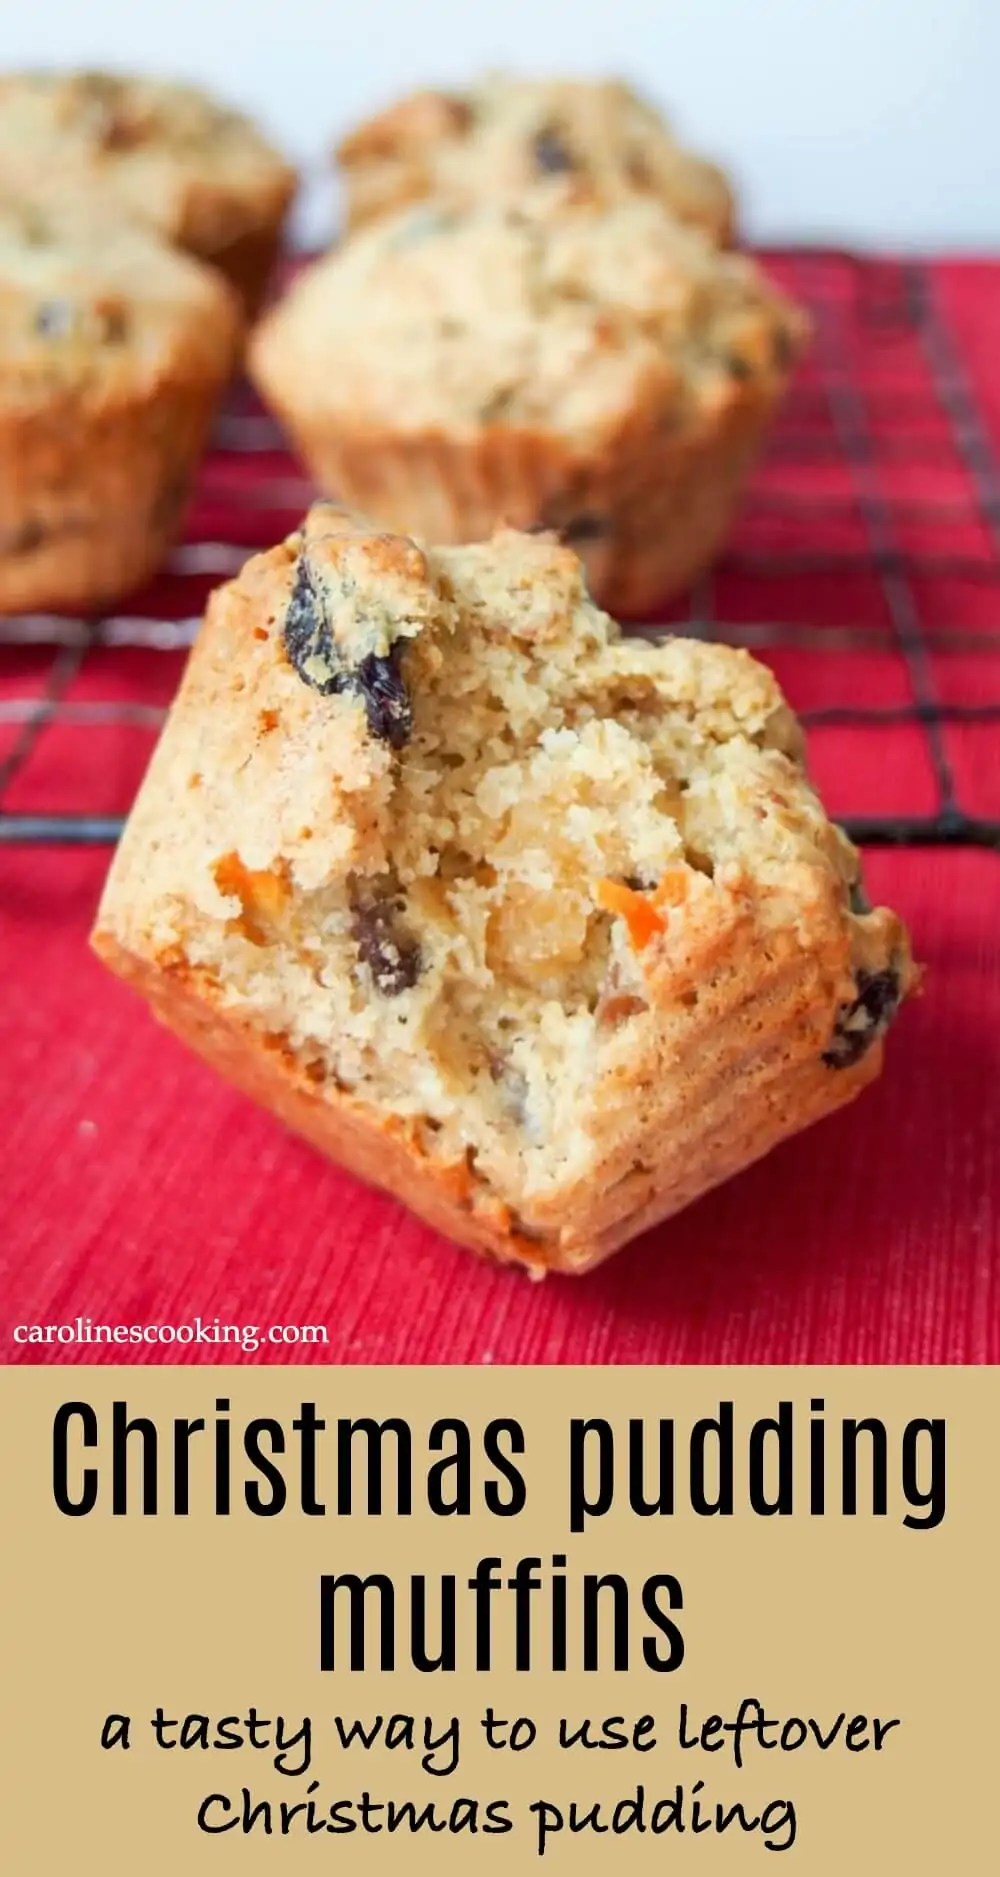 These Christmas pudding muffins are a tasty way to give leftover Christmas pudding a new lease of life. Quick, easy to make, a lovely mix of fruit and spice. #Christmaspudding #muffin #leftovers